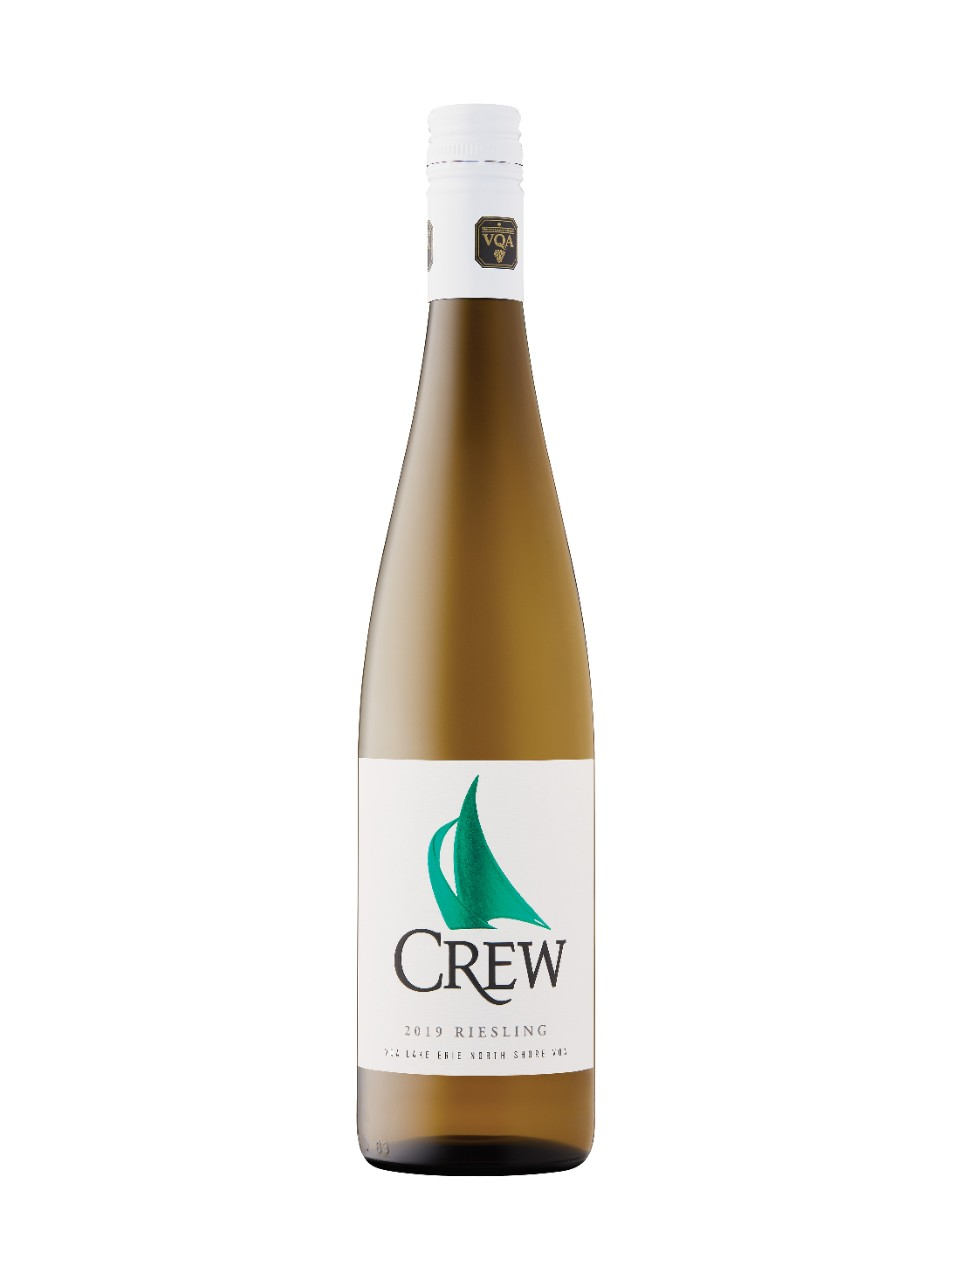 CREW Riesling 2018 from LCBO